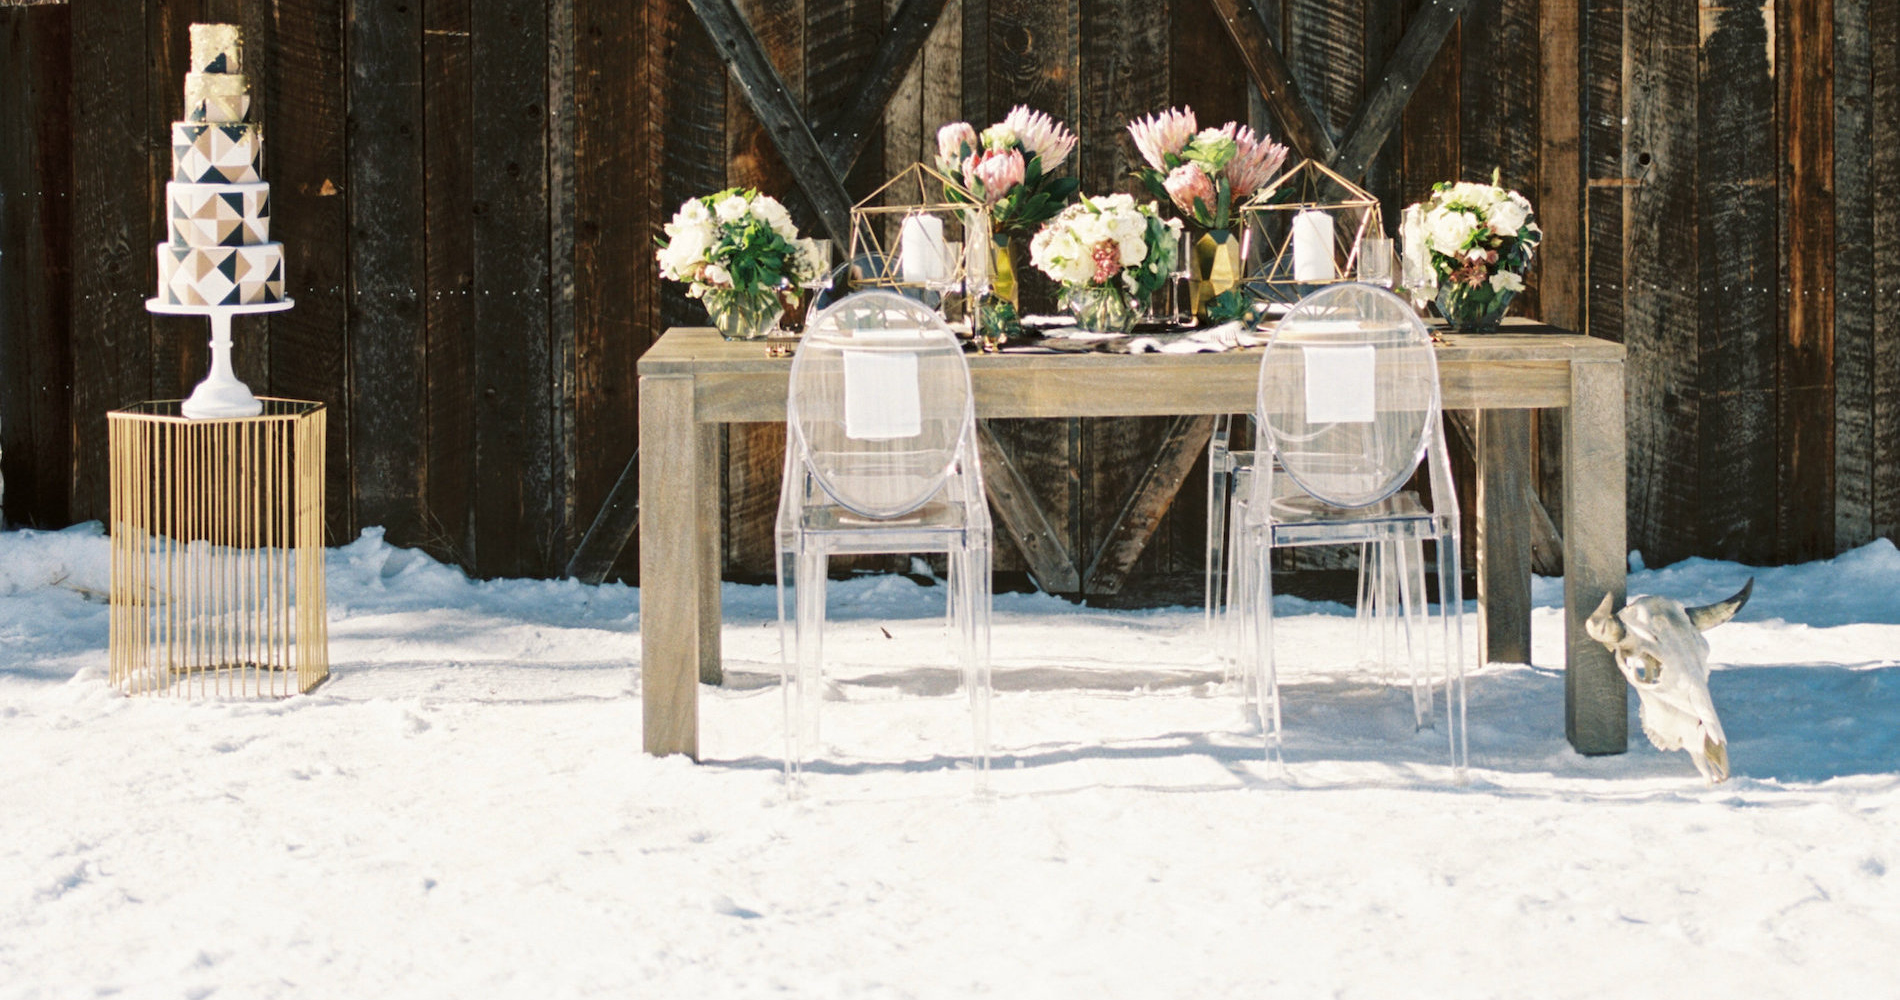 Contemporary-Winter-Wedding-Inspiration-by-Rachel-Havel-and-Bluebird-Productions-13-1900x1000.jpg